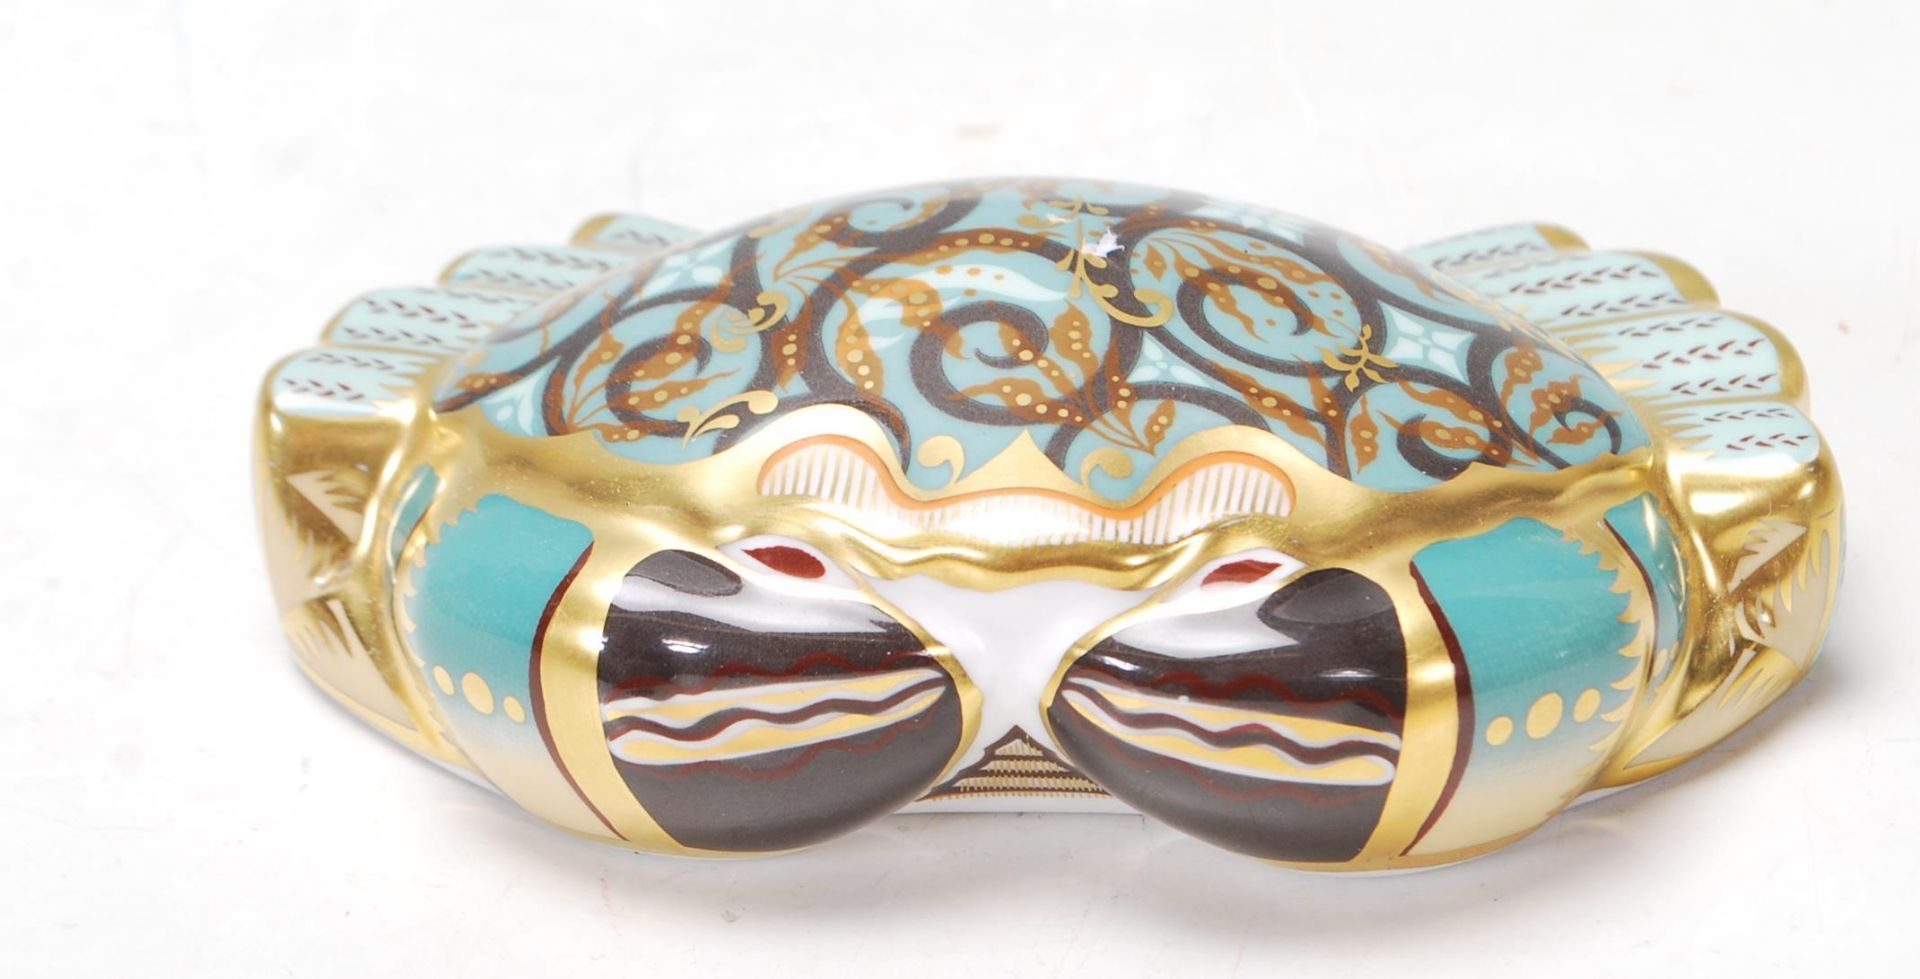 ROYAL CROWN DERBY PAPERWEIGHT IN A FORM OF A CROMER CRAB WITH GOLD STOPPER - Image 2 of 6